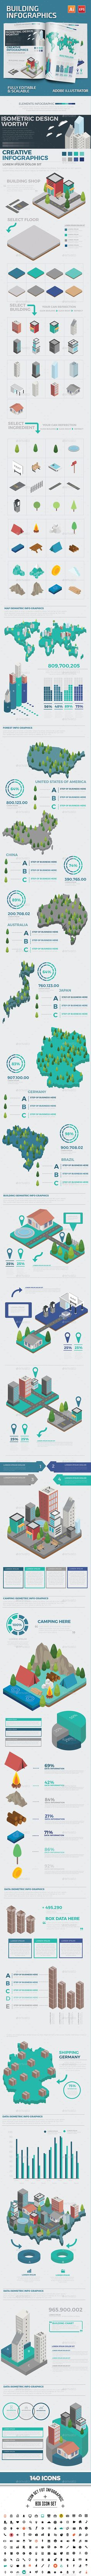 Building Infographic Design — EPS Template #office #build • Download ➝ https://graphicriver.net/item/building-infographic-design/18521997?ref=pxcr